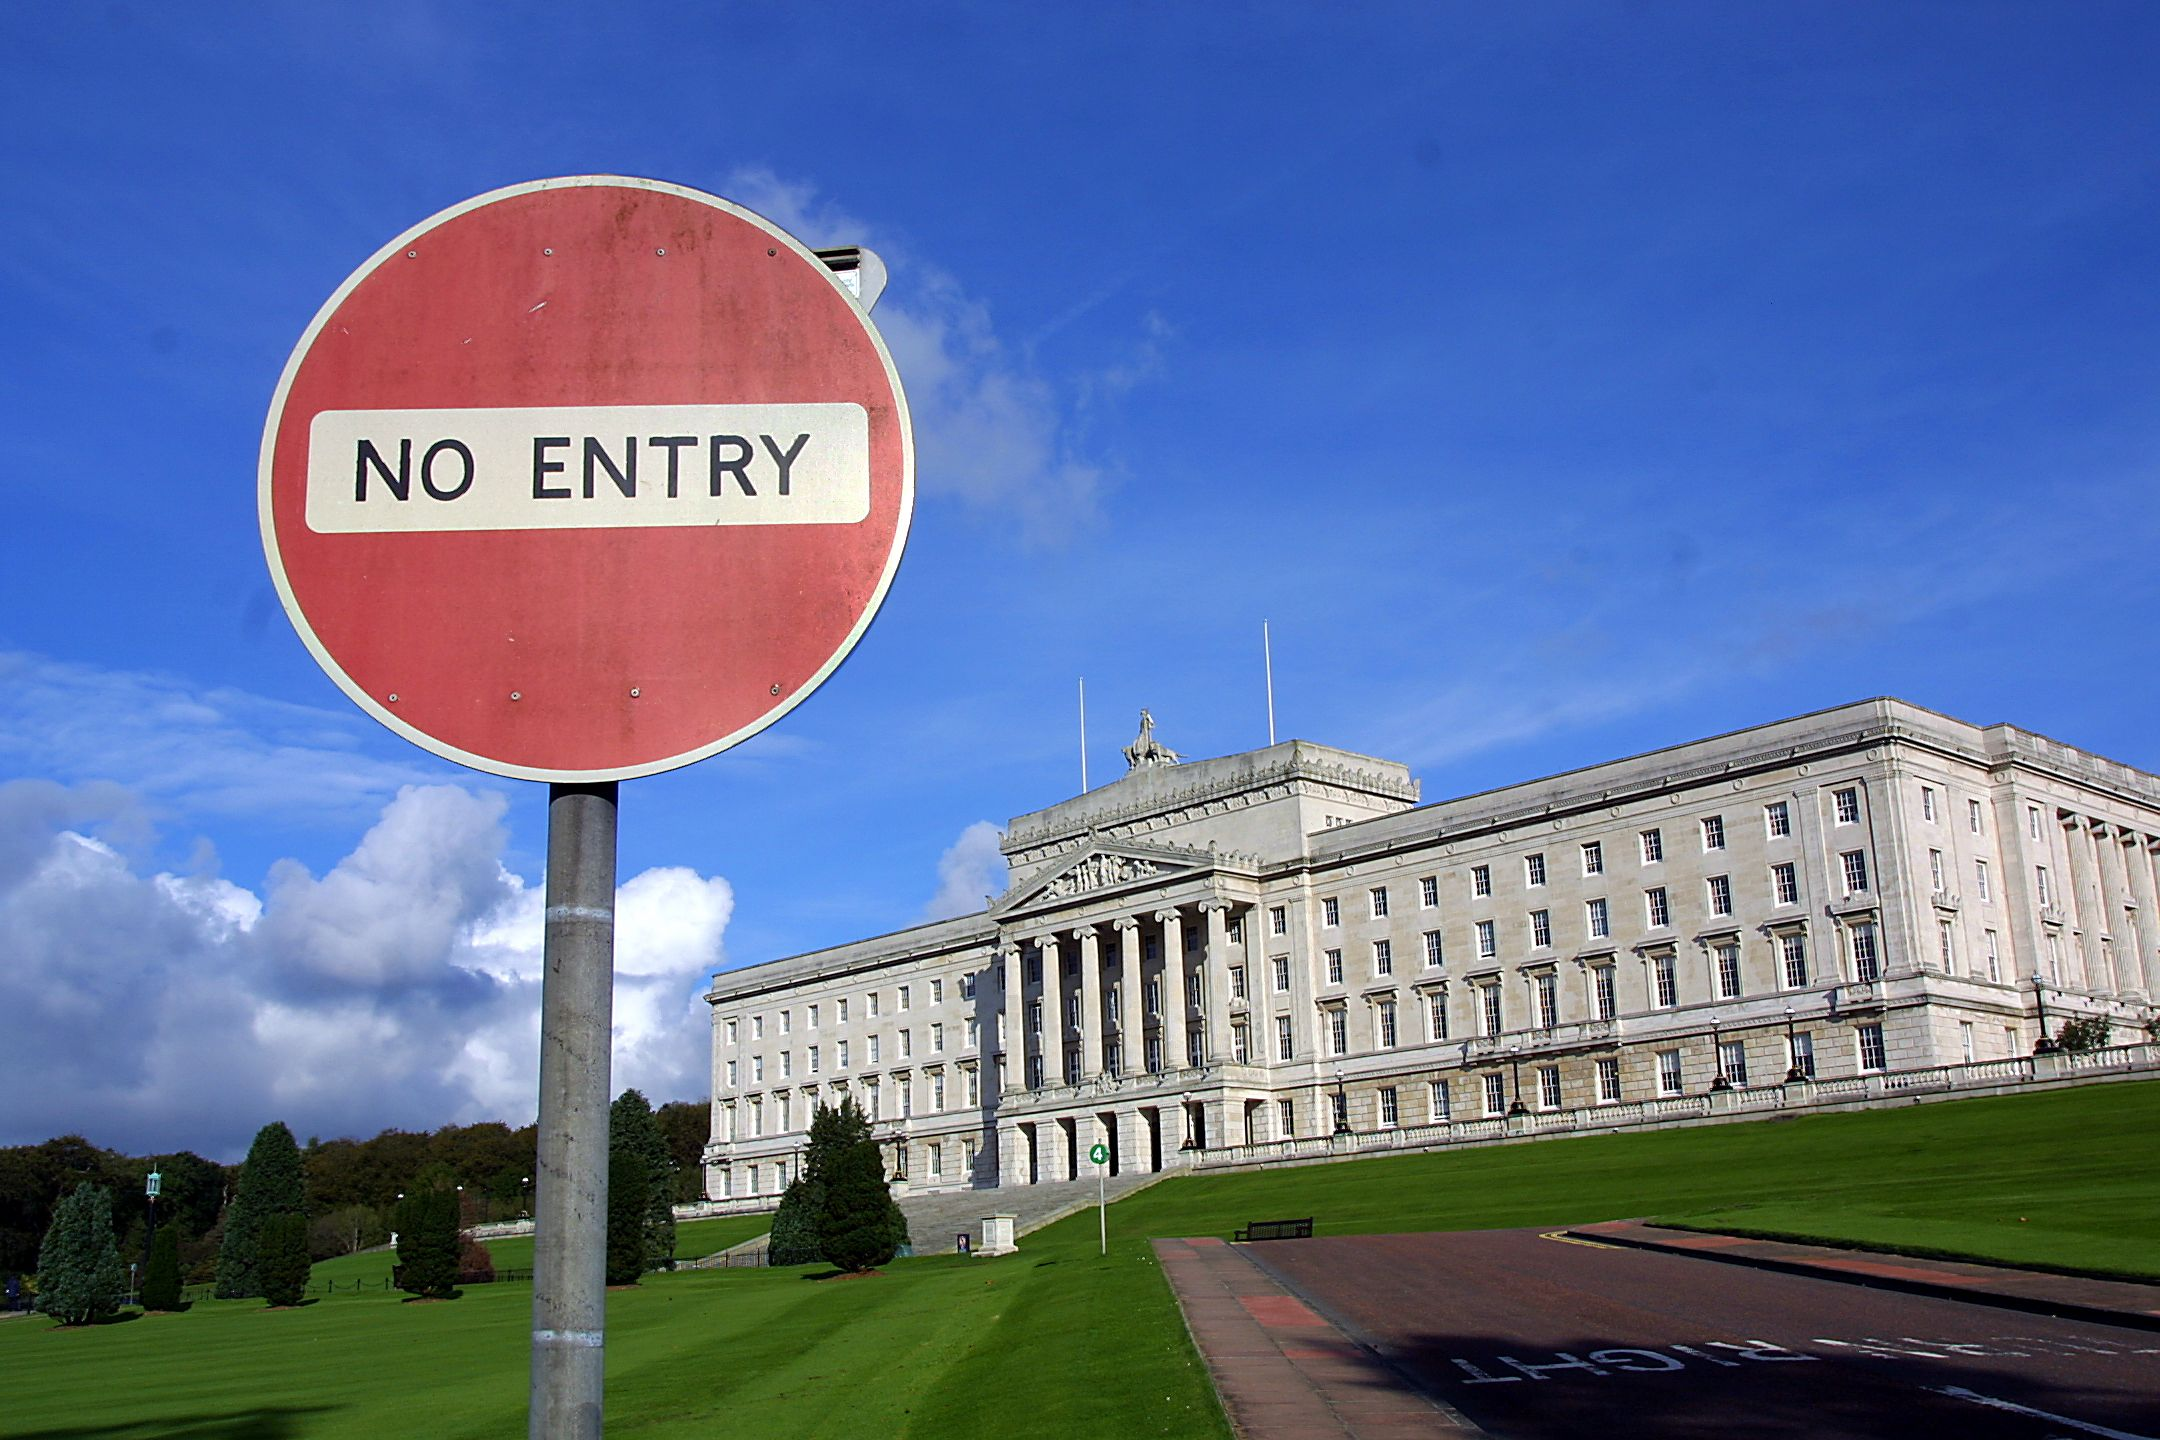 SAME OLD STORY: UUP stance on Irish language belies moves to moderation claims.